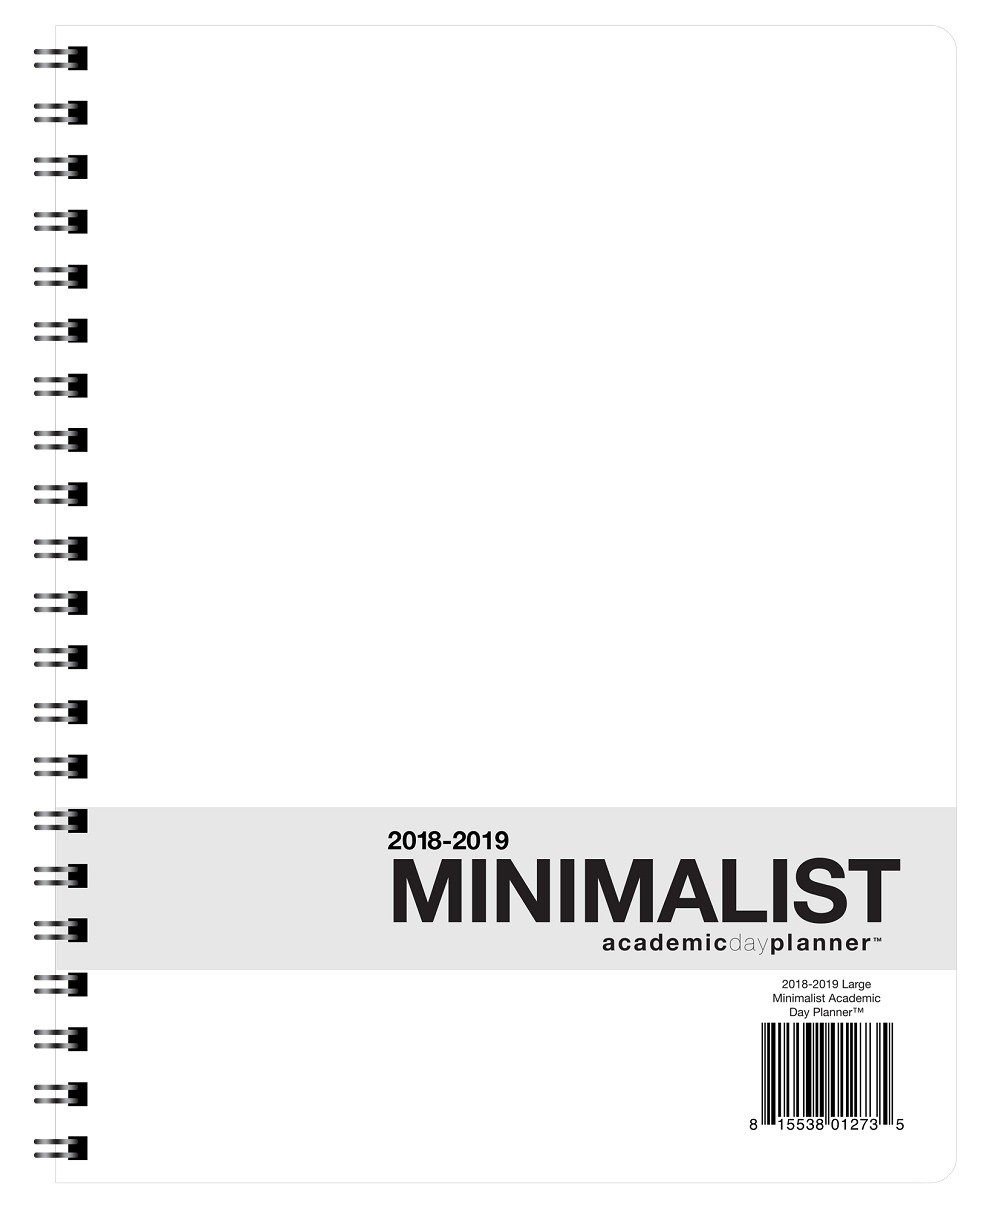 "2018-2019 Large Minimalist Academic Planner (8.5"" x 11""), Wire Bound, Crisp White Archival Quality Paper"